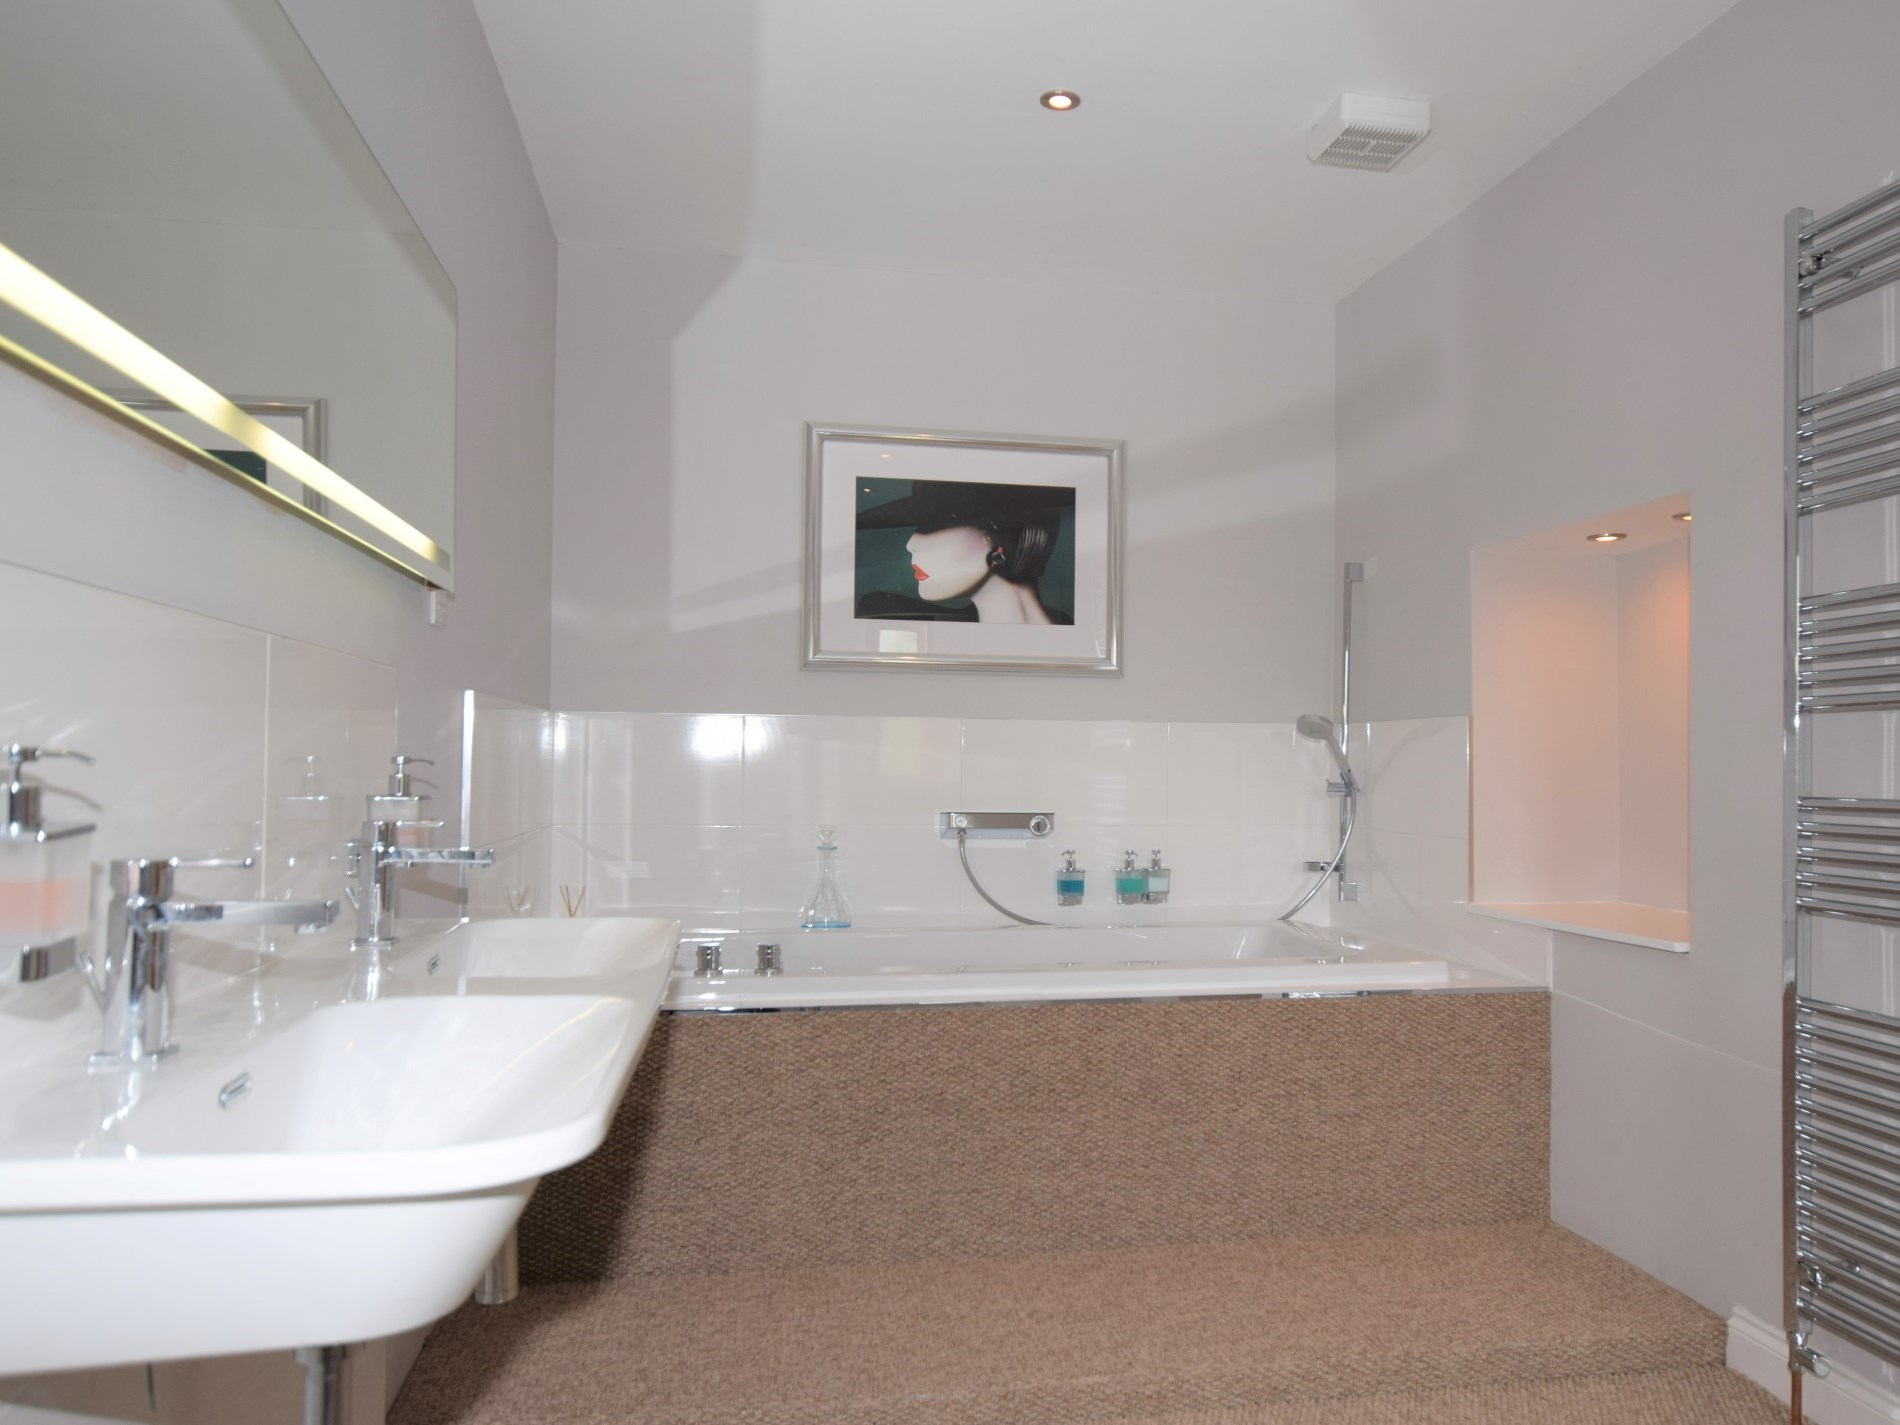 En-suite to master bedroom, twin sinks and a big bath to relax in